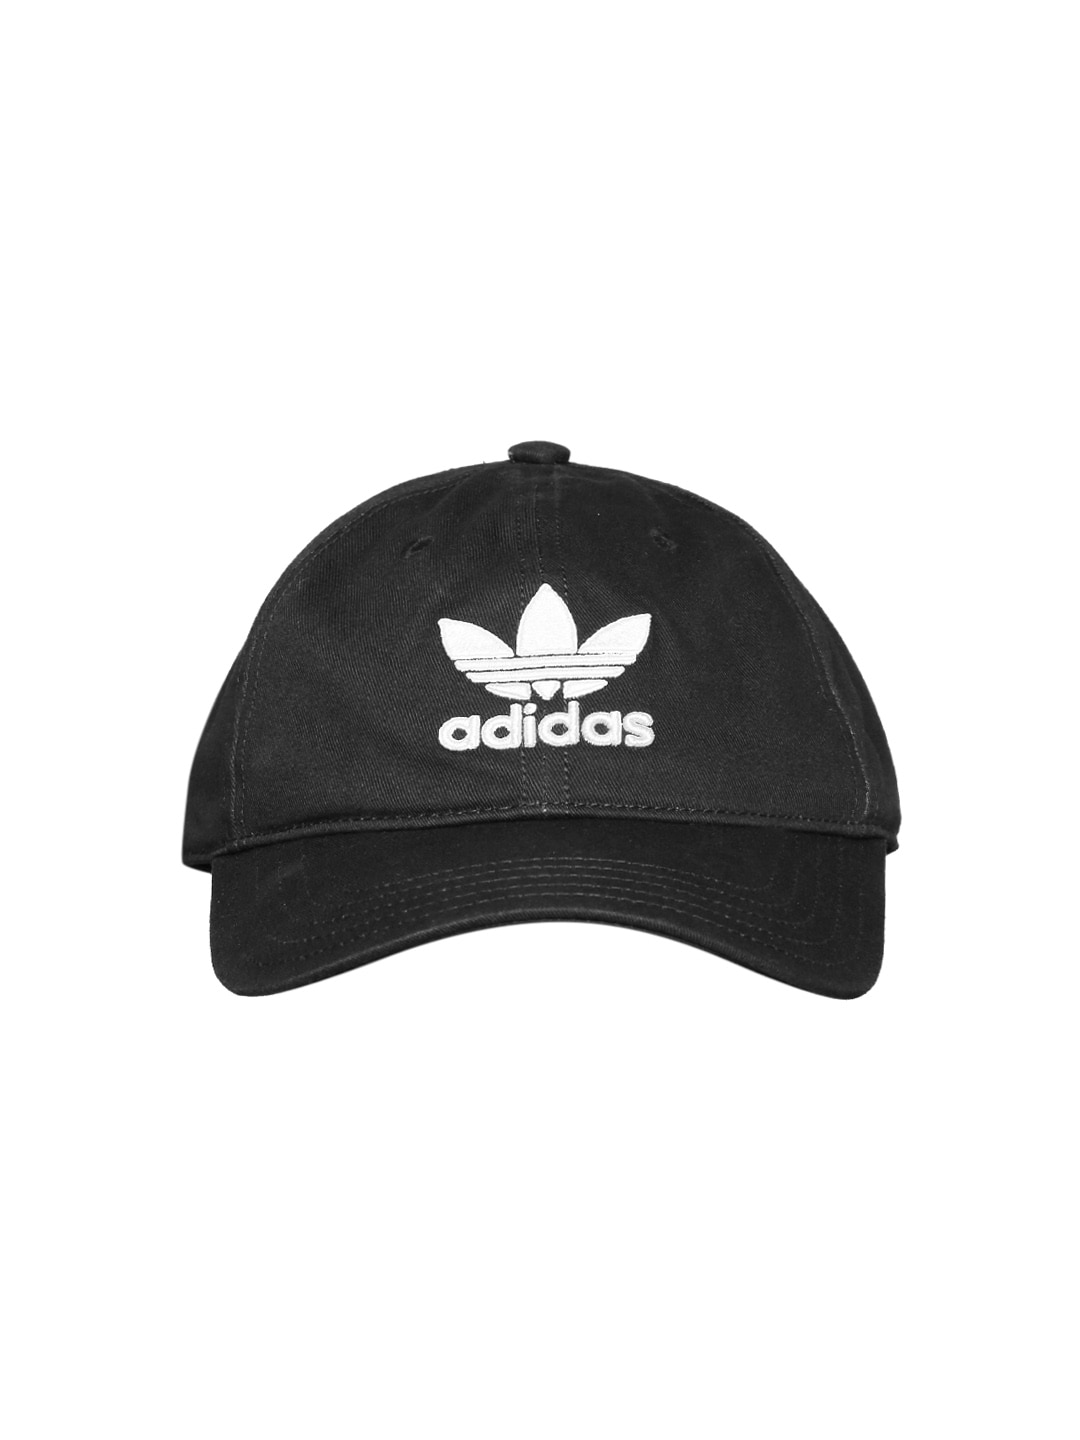 Adidas Men Black Cap Caps - Buy Adidas Men Black Cap Caps online in India 7ddc87e7ca96